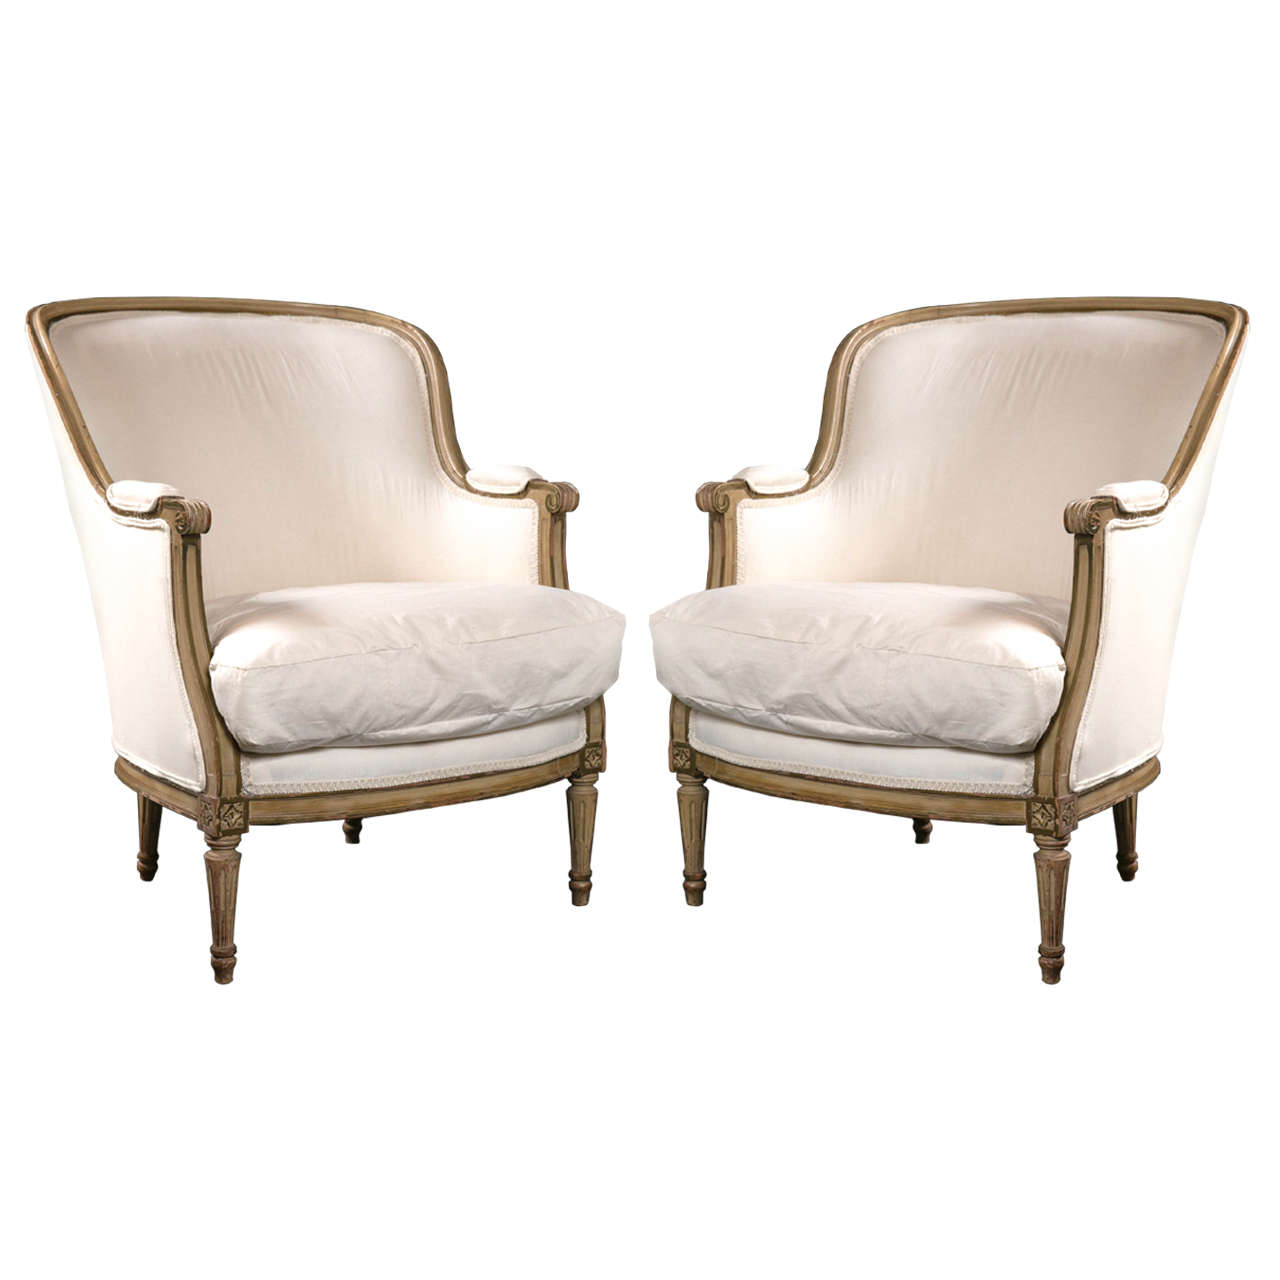 Pair Of Maison Jansen Berg Re Chairs In Louis XVI Style At 1stdibs